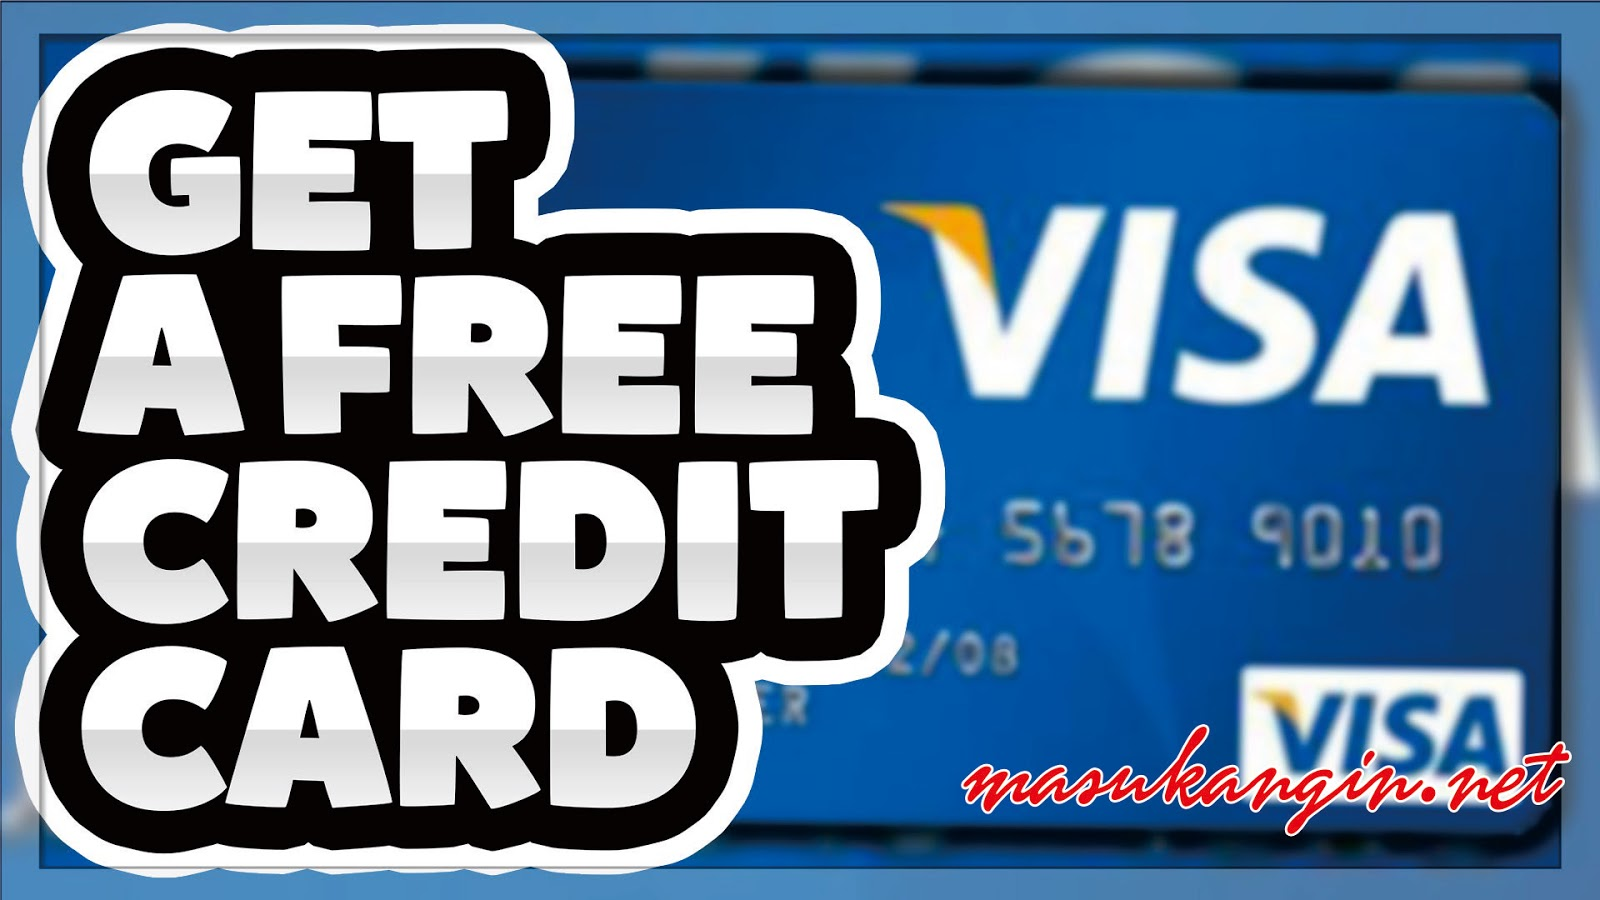 how to get free visa credit card numbers as the valid ones - Free Visa Card